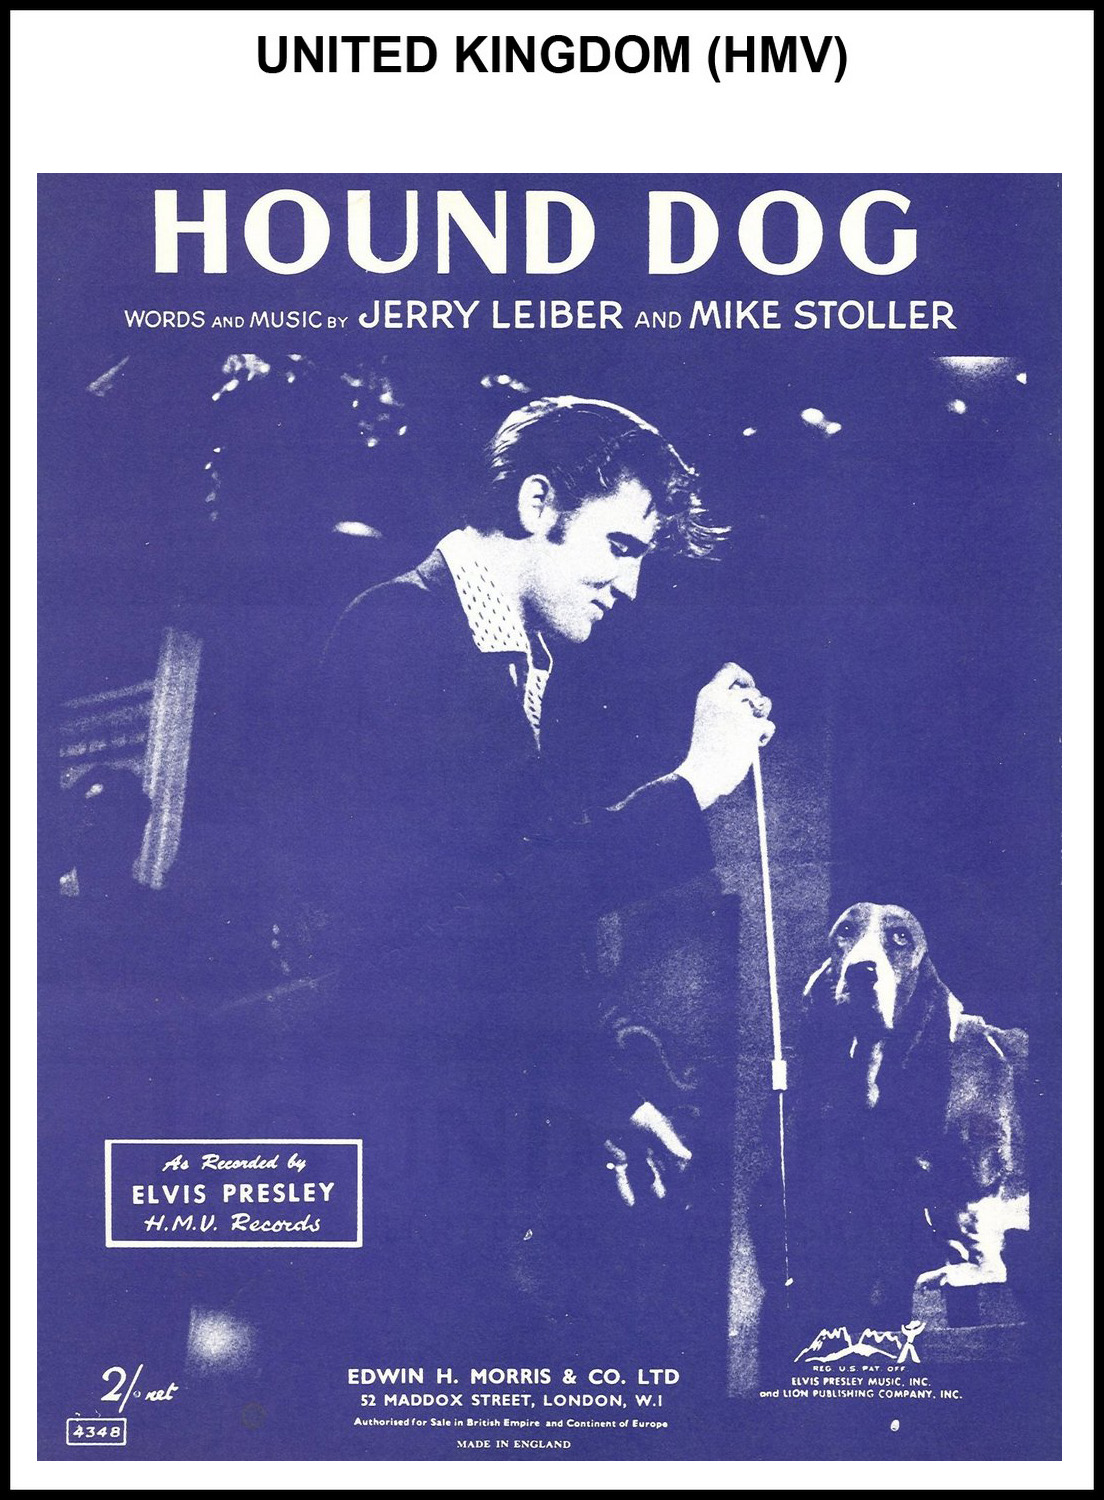 1956 - Hound Dog (UK, HMV) (CHRIS GILES COLLECTION)